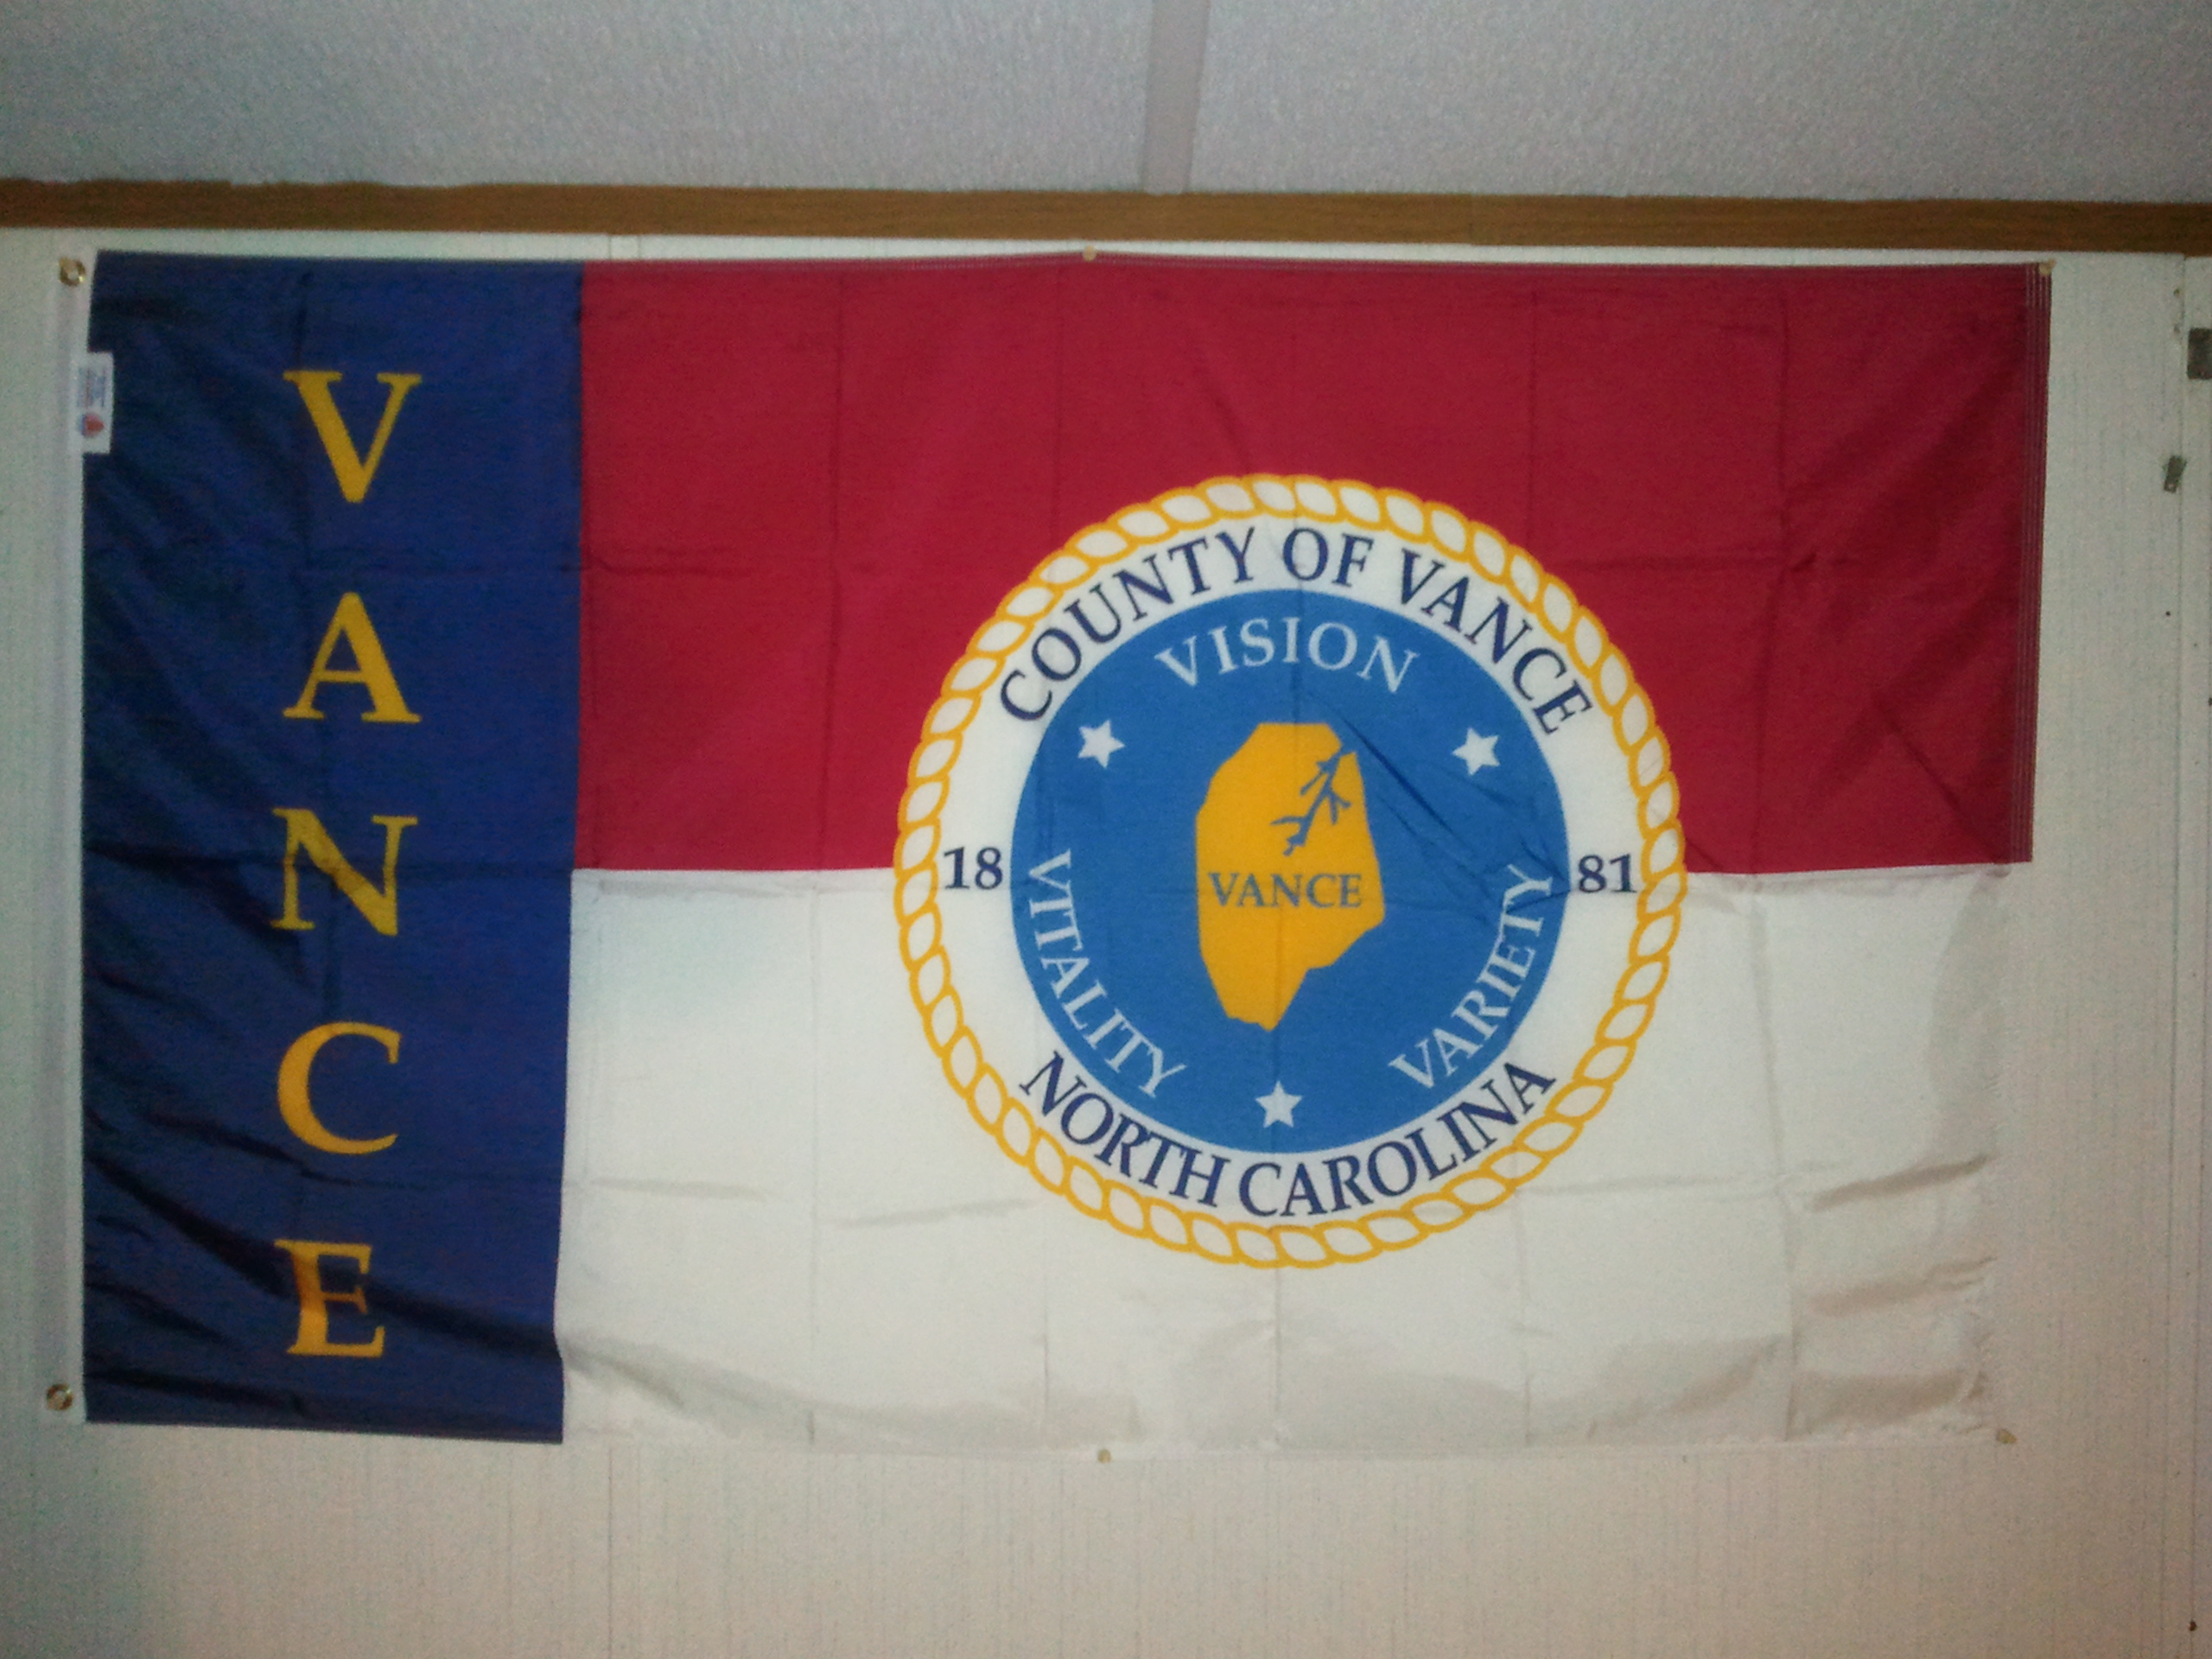 File:Vance county flag.jpg - Wikipedia, the free encyclopediabalance of vance county